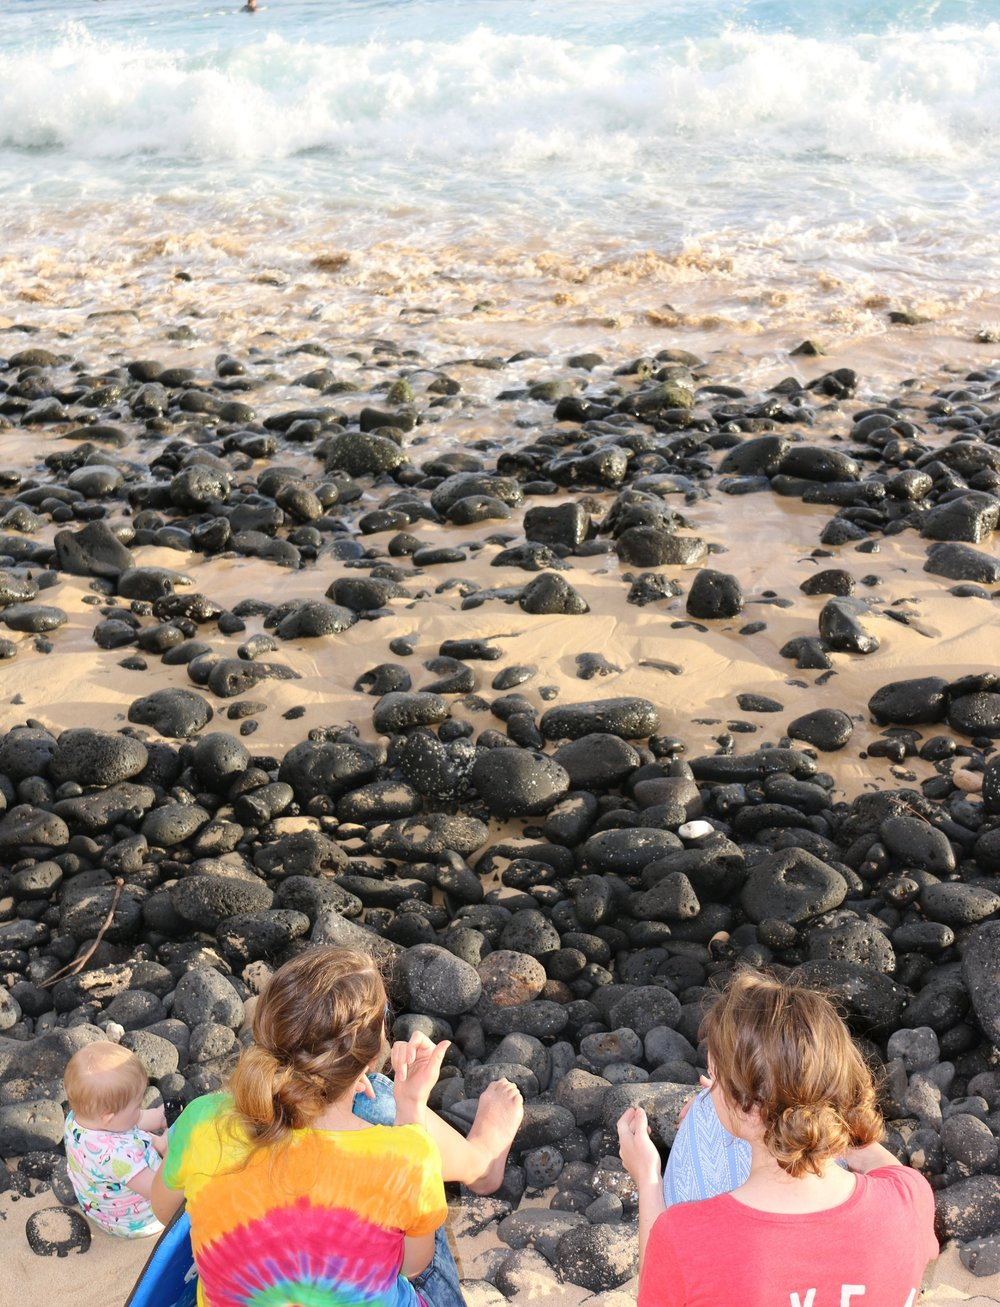 Kauai might not be everyone's perfect vacation destination, but we thoroughly enjoyed our time there!